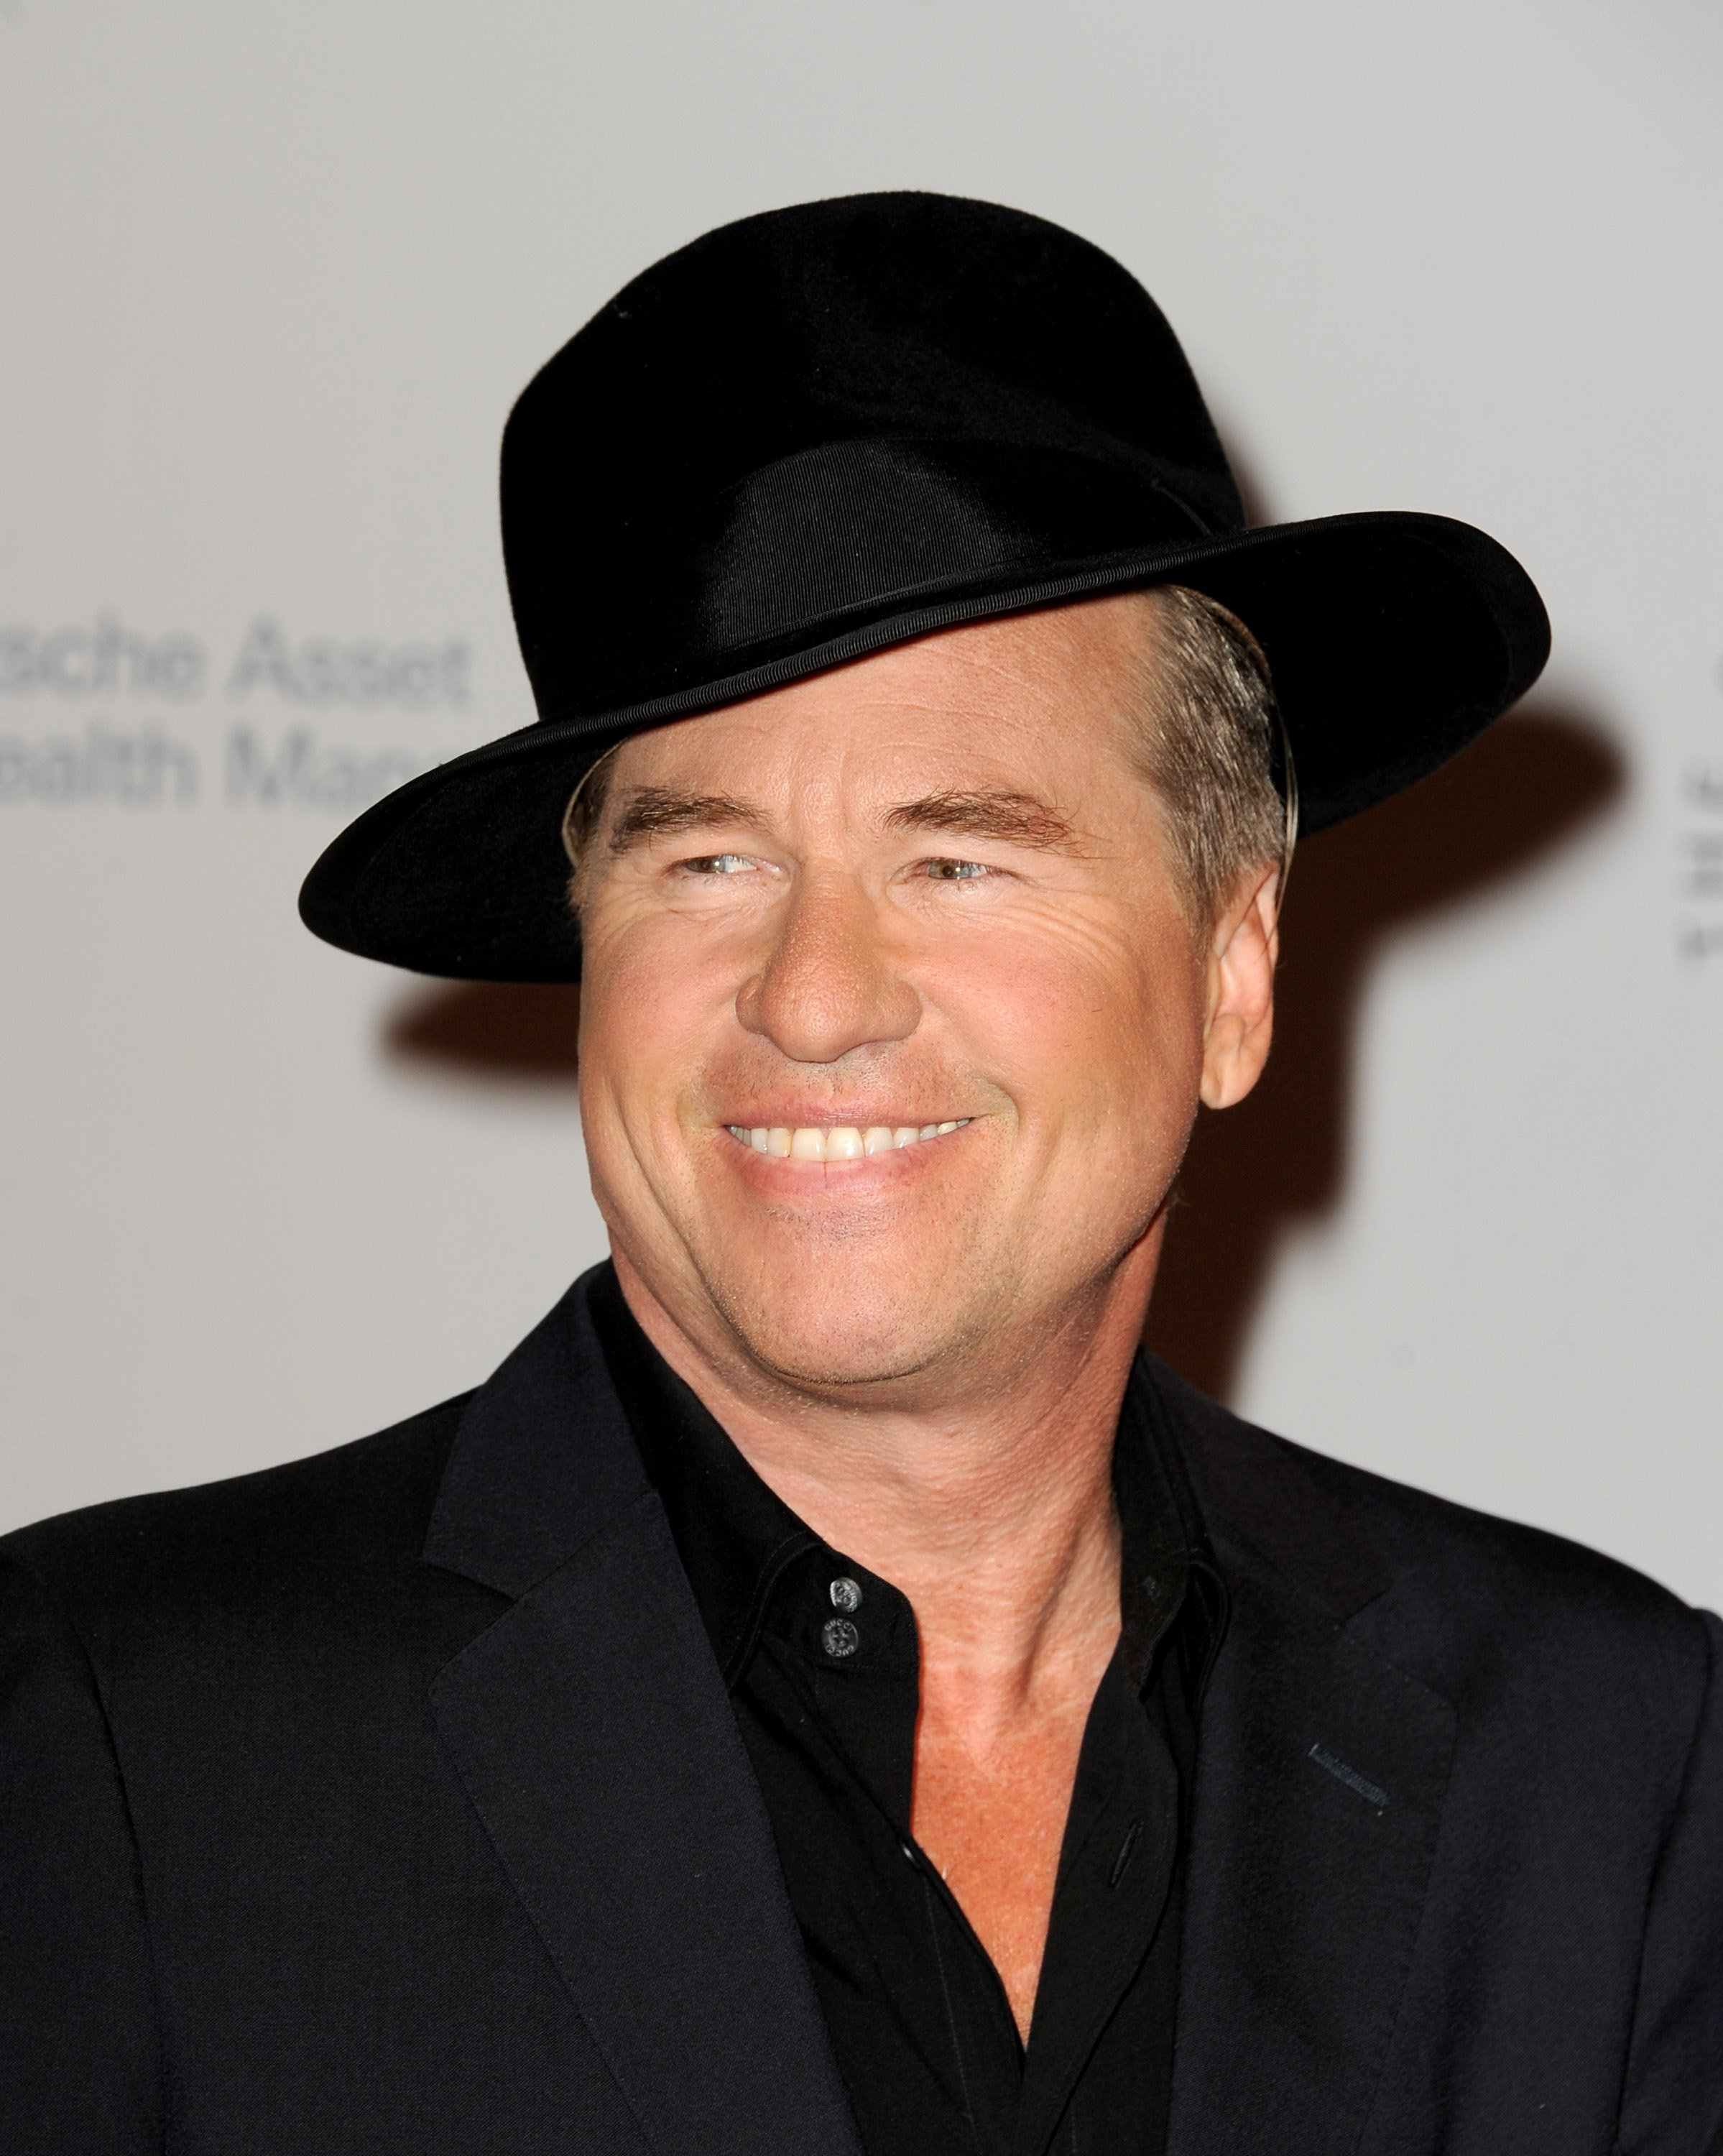 """Val Kilmer arrives at the 23rd Annual Simply Shakespeare Benefit reading of """"The Two Gentleman of Verona"""" at The Broad Stage. 